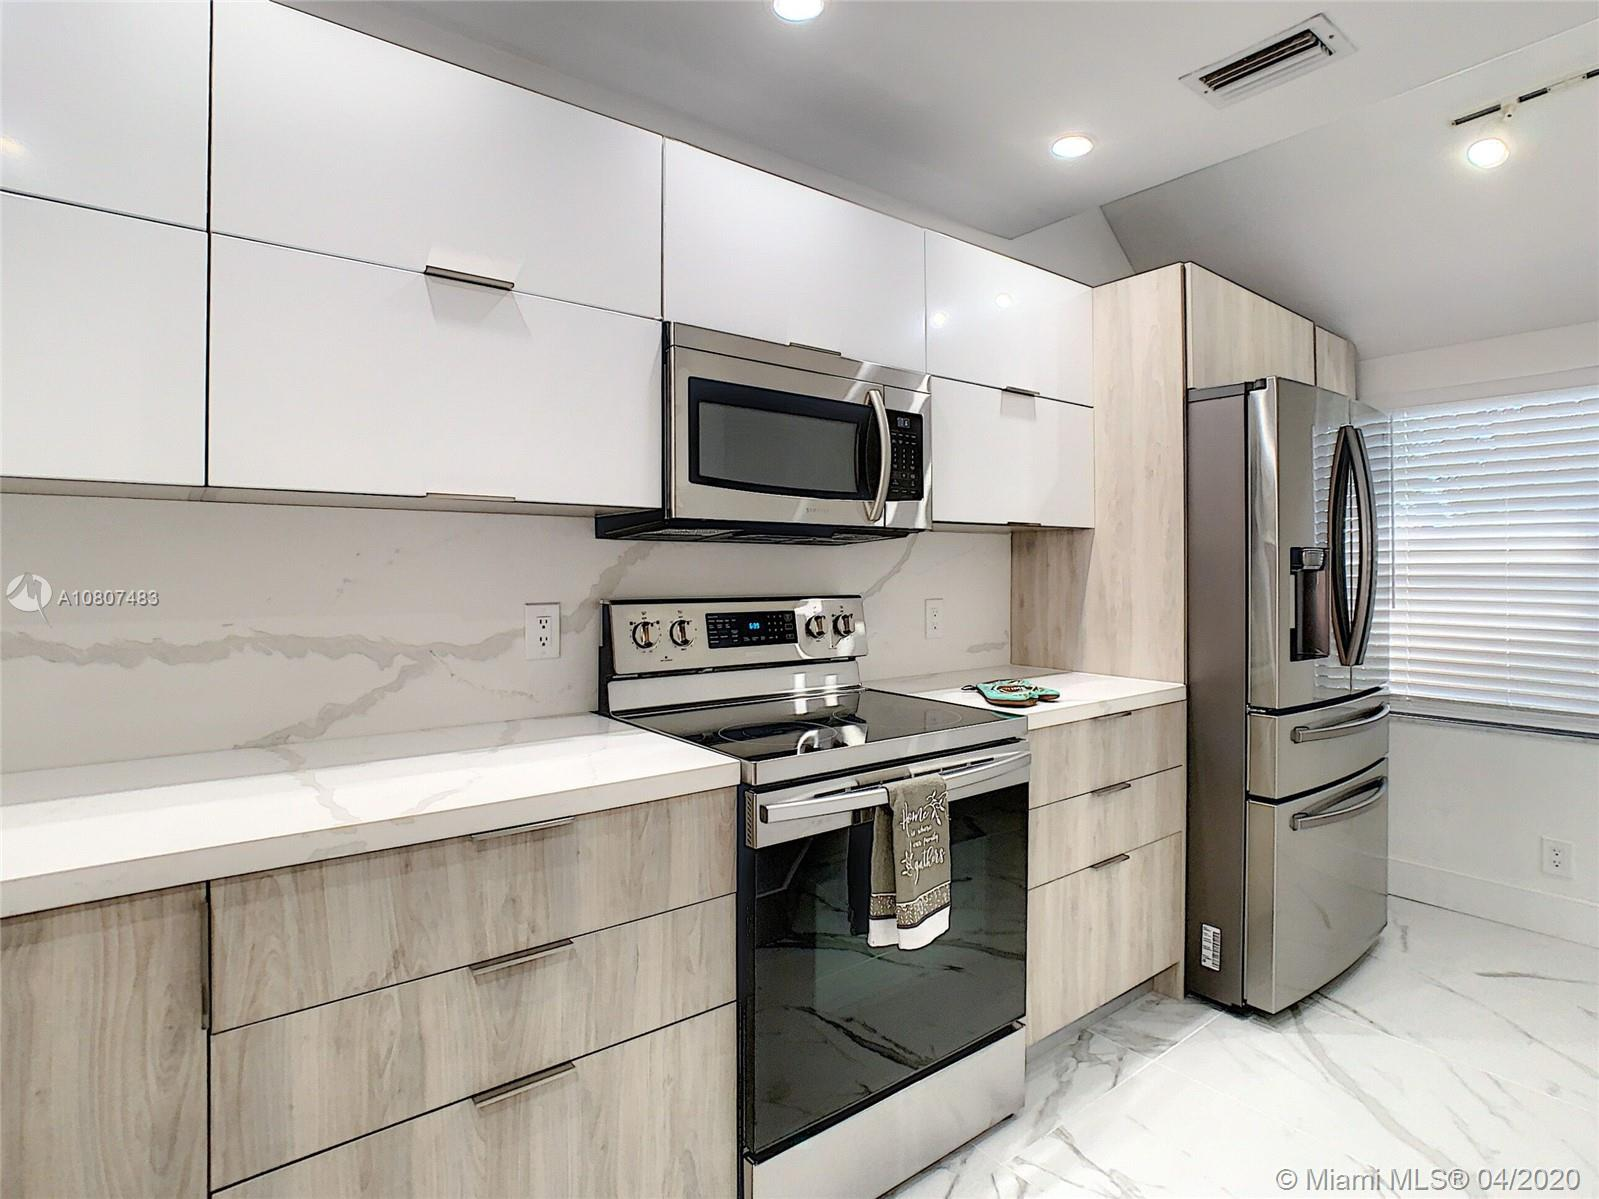 FULLY REMODELED 2 BED 2.5 BATH TOWNHOME NEAR LAS OLAS, THE BEACH & FLL AIRPORT. SMALL GATED COMMUNITY WITH ONLY 8 UNITS. PORCELAIN 24X48 & LAMINATE FLOORS THROUGHOUT.  EUROPEAN STYLE STAINLESS STEEL APPLIANCES & QUARTZ COUNTER TOP.  LAUNDRY ROOM AND FENCED PATIO FOR ENTERTAINMENT & MUCH MORE.